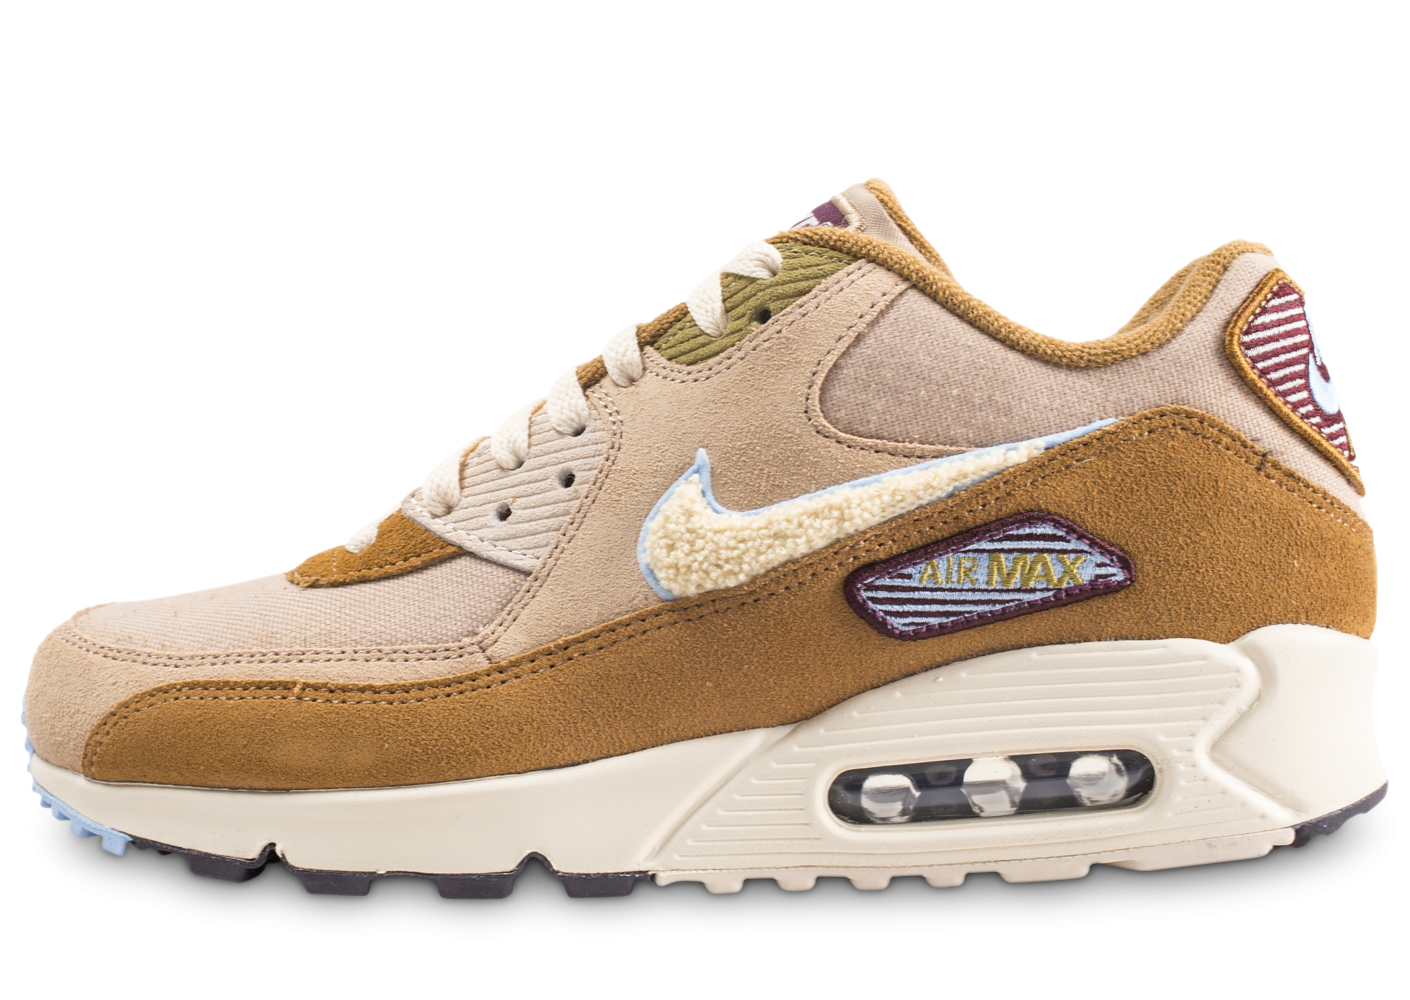 check out 4fa76 1c735 Nike Air Max 90 Premium SE Beige Chenille - Chaussures Baskets homme -  Chausport